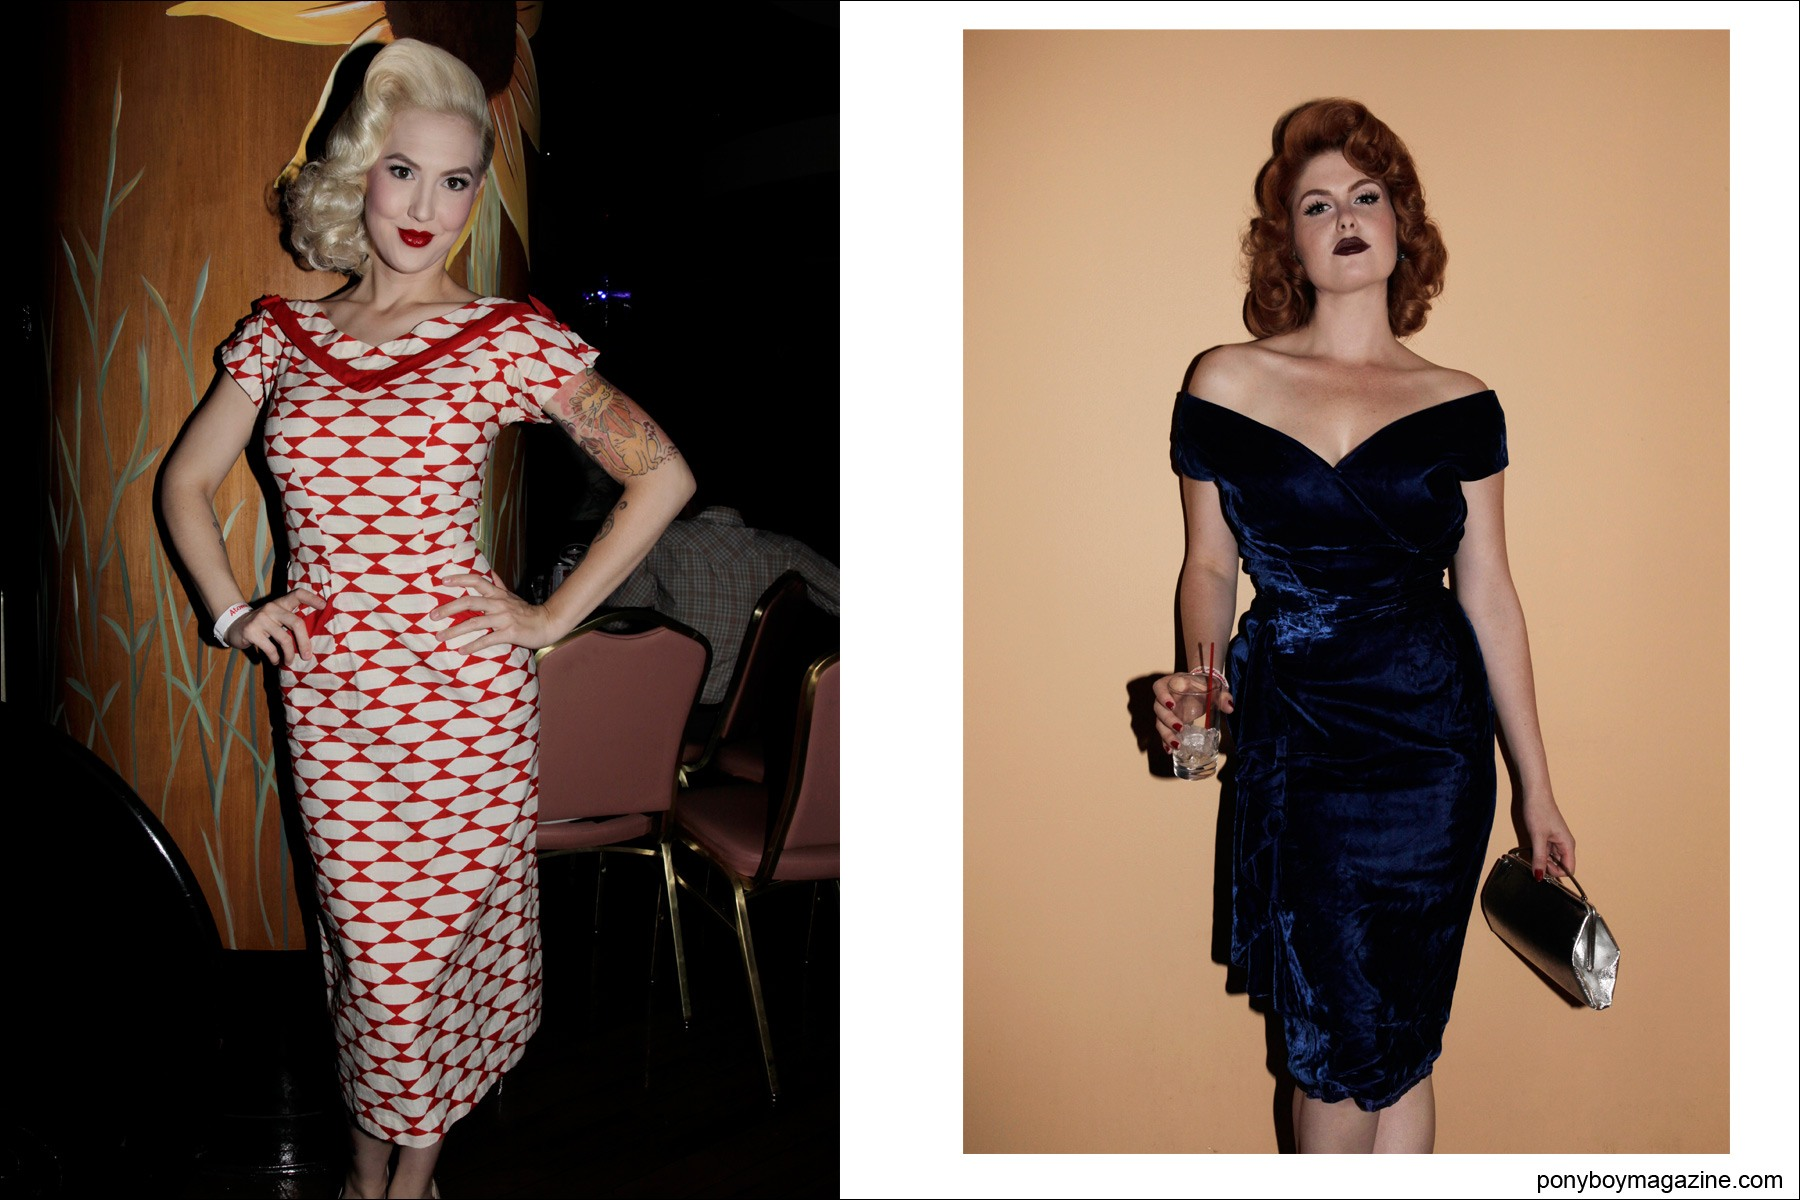 1950 S Vintage Fashions On Pin Up Models Miss Rockabilly Ruby And Doris Mayday Photographed